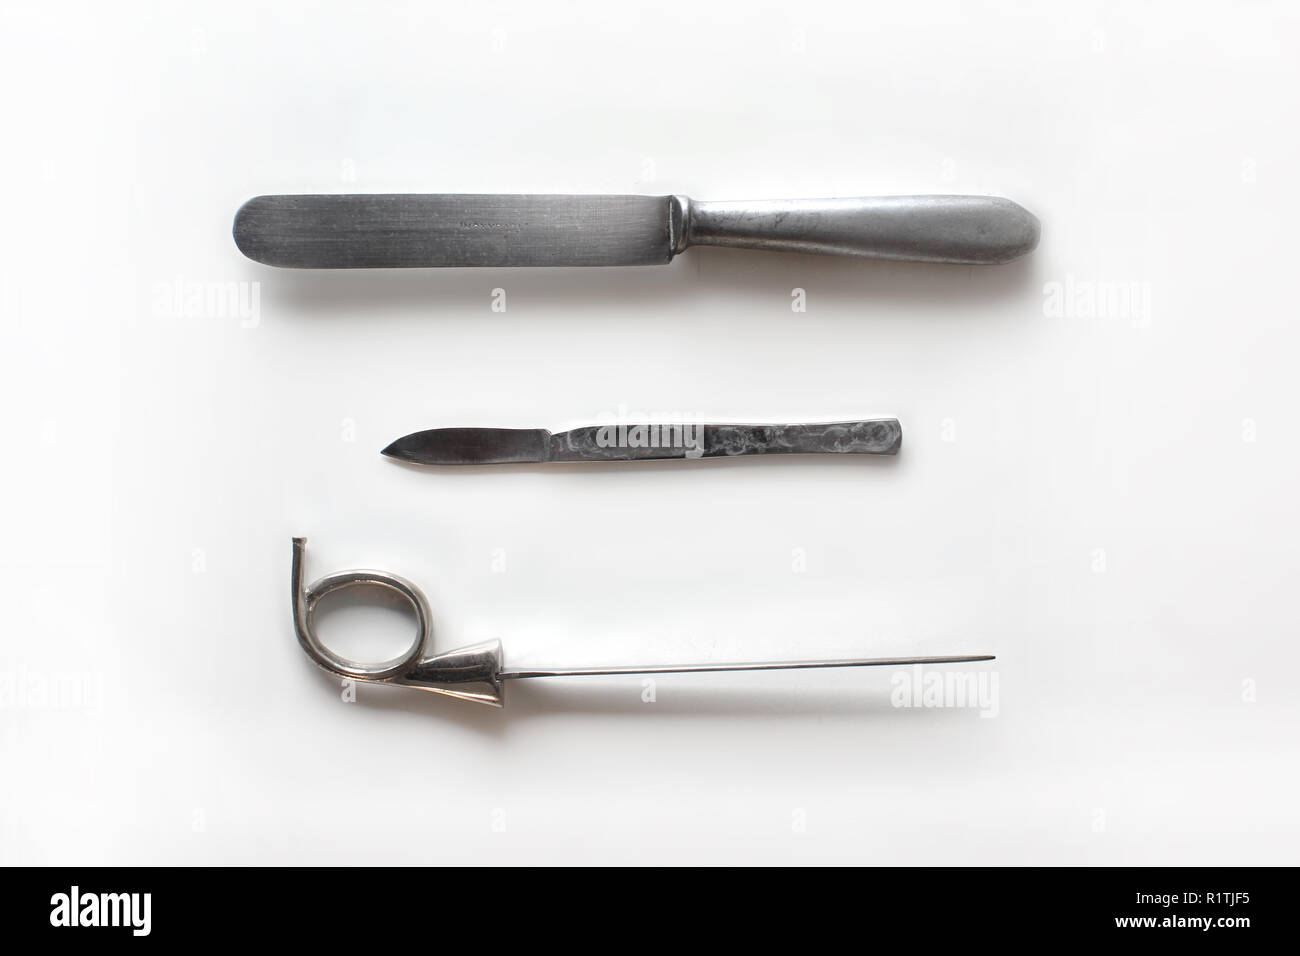 Old silver Knife, scalpel and awl isolated on a white background - Stock Image